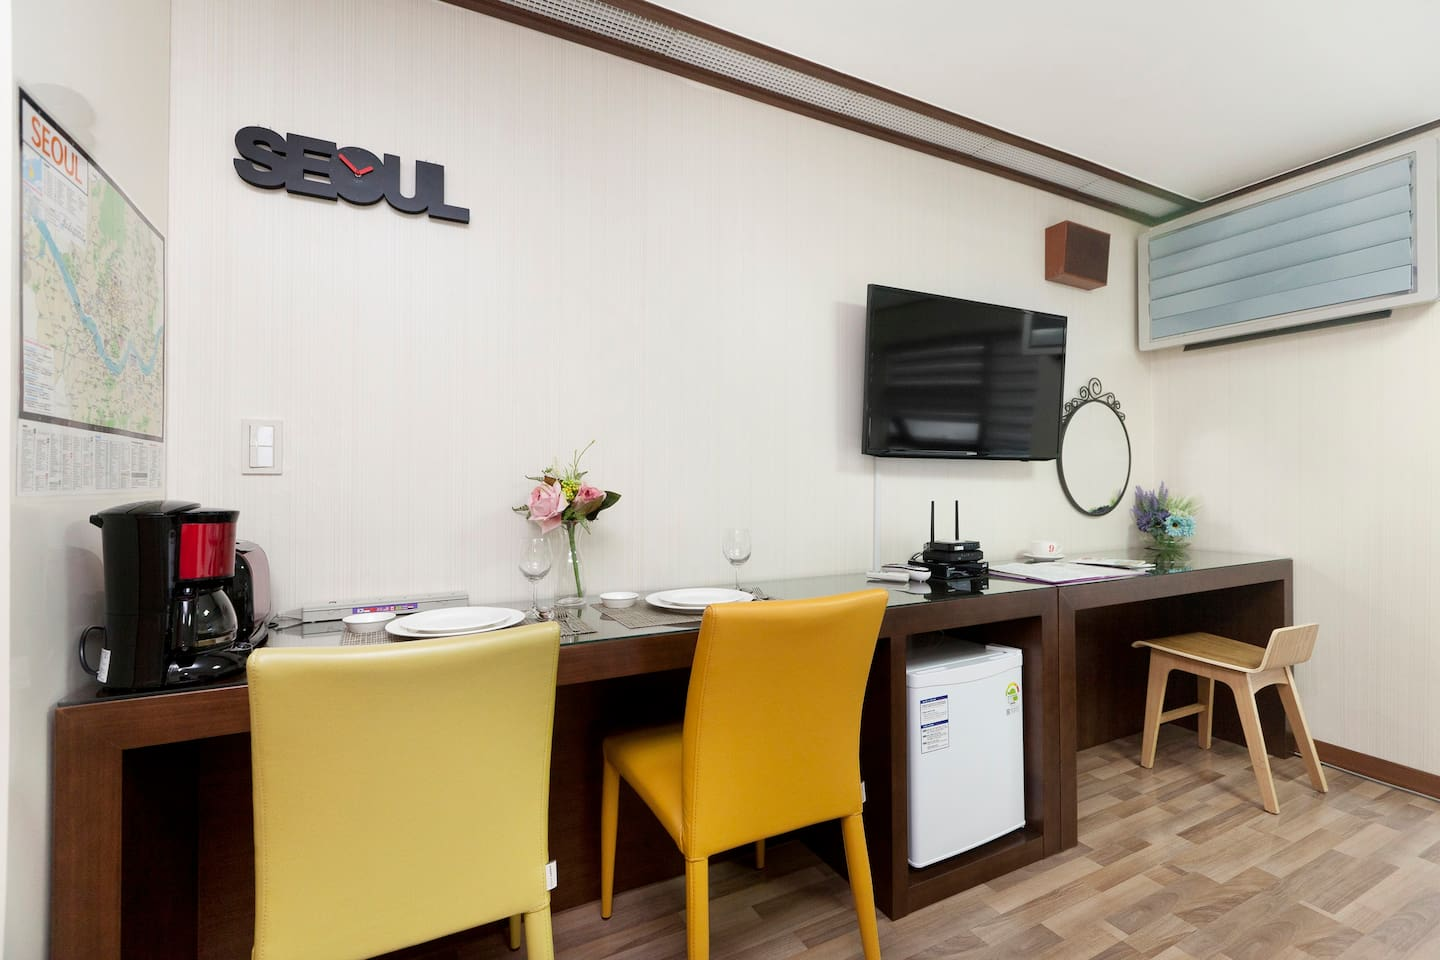 insadong  hyun hees cozy house apartments for rent in jongno gu seoul south korea: heater table aaad